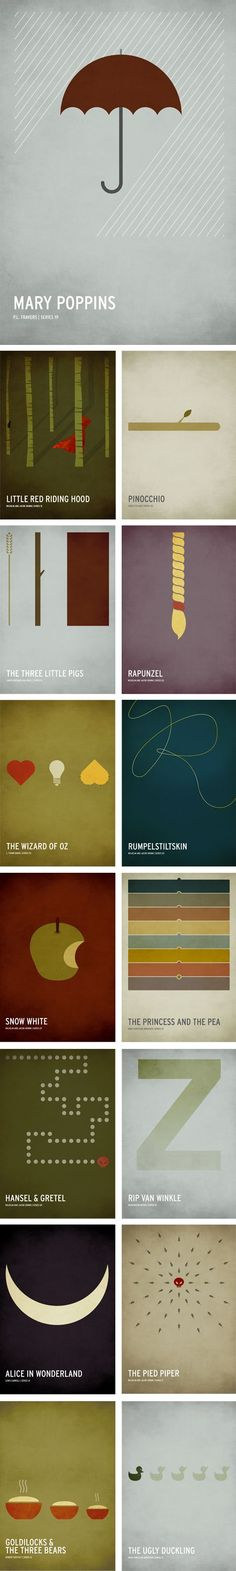 i dont think this has anything to do with logos but this is pretty sweet! minimalist fairy tale posters